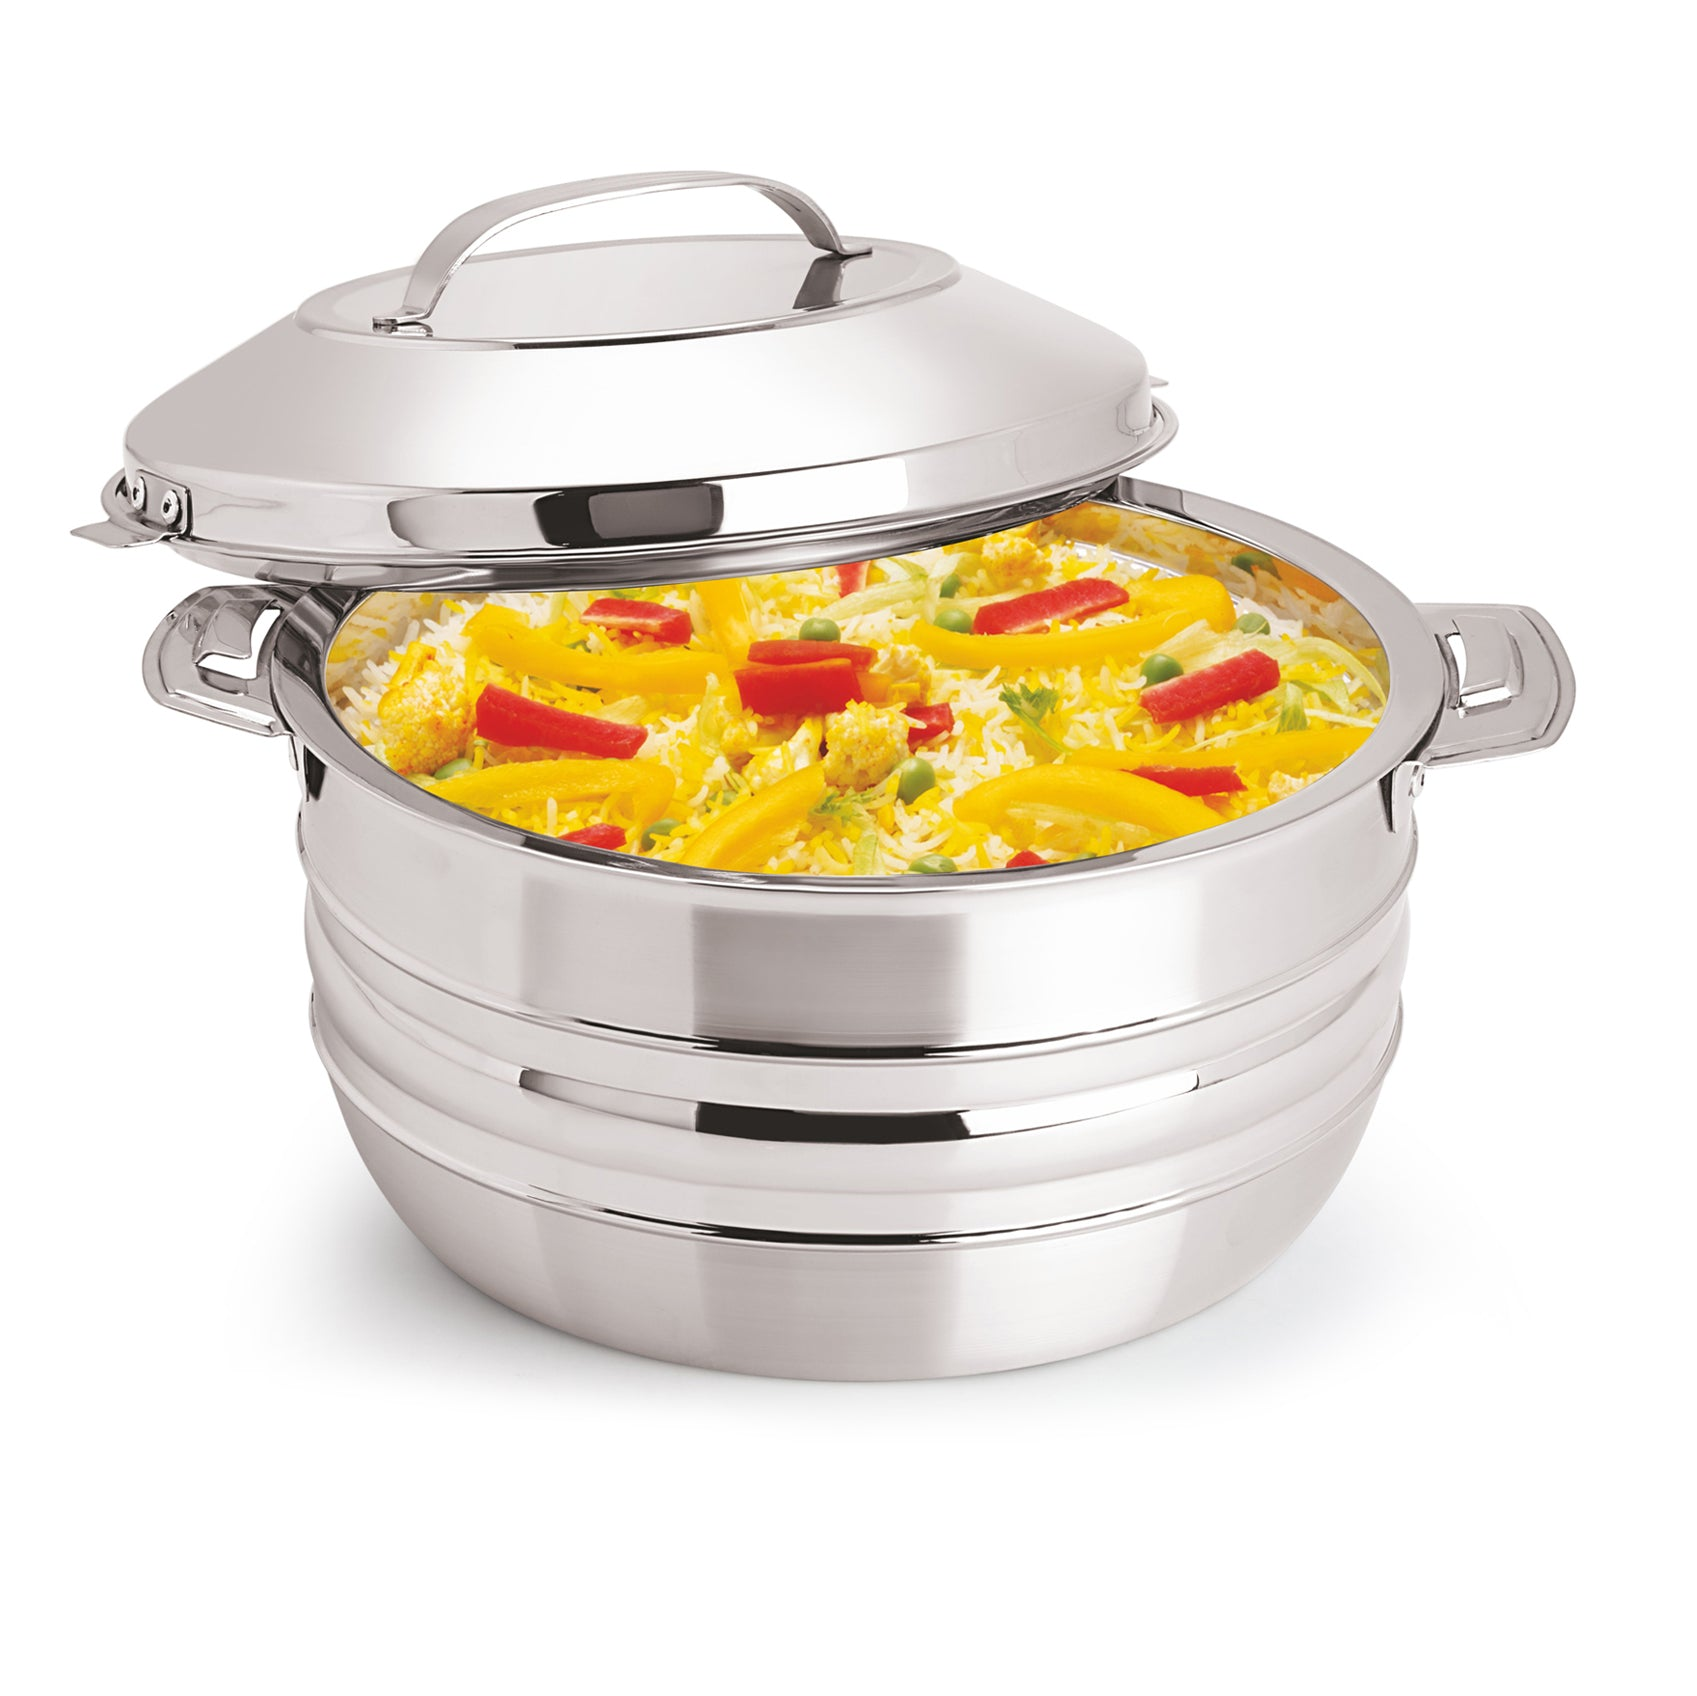 Royalford RF8415N 4L Stainless Steel Esteelo Hot Pot - Double Wall Hot Pot | Serving Dishes with Lids | Hot Food Storage Containers & Warmers with Comfortable Handle | Storage Saver for Everyday Use